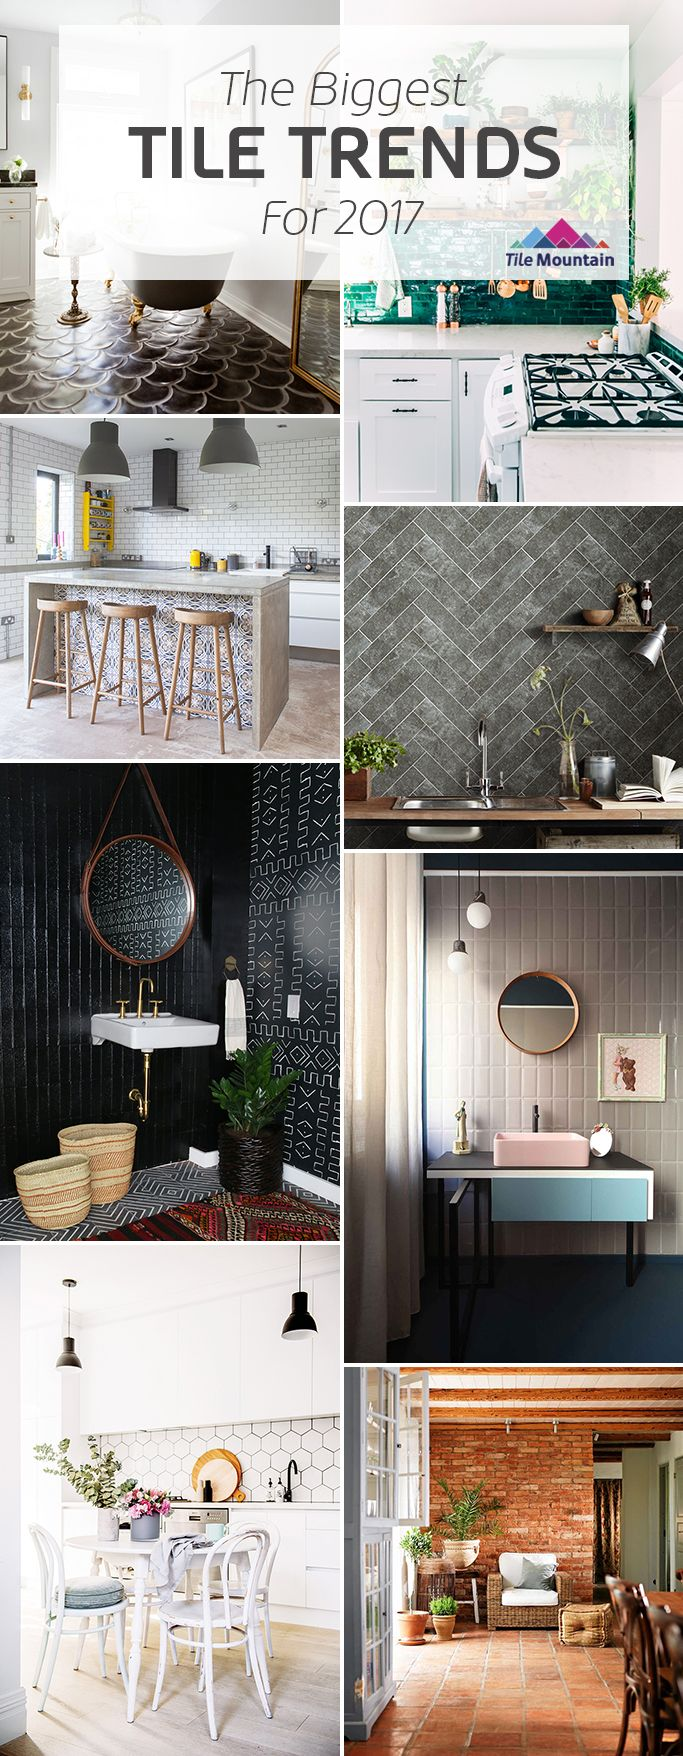 Choosing the right tiles for your bathroom can be an enjoyable but difficult…